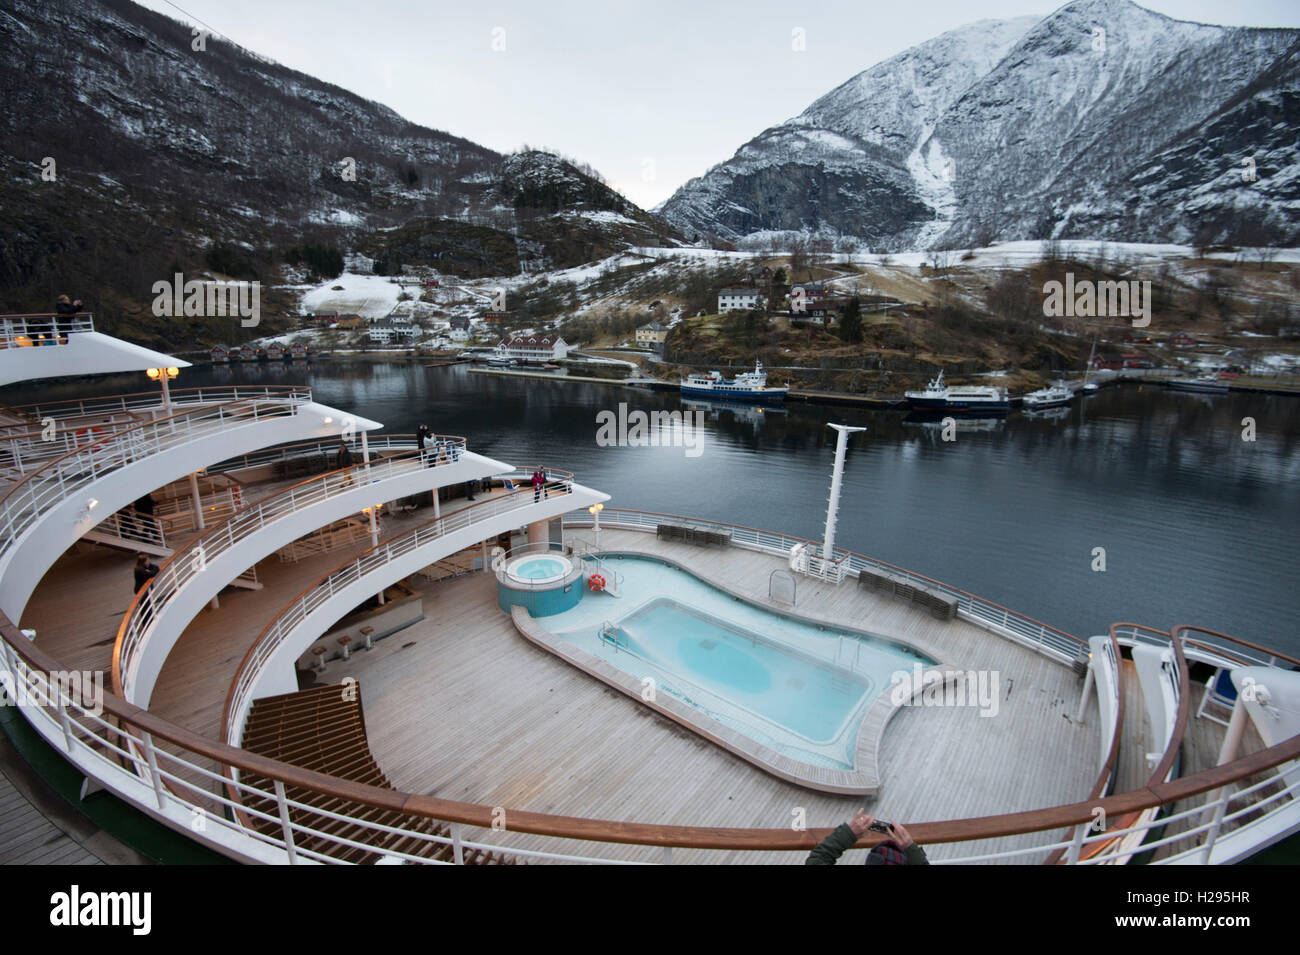 PO Oriana Cruise Ship In The Snow Coverered Fjords In Norway - Oriana cruise ship